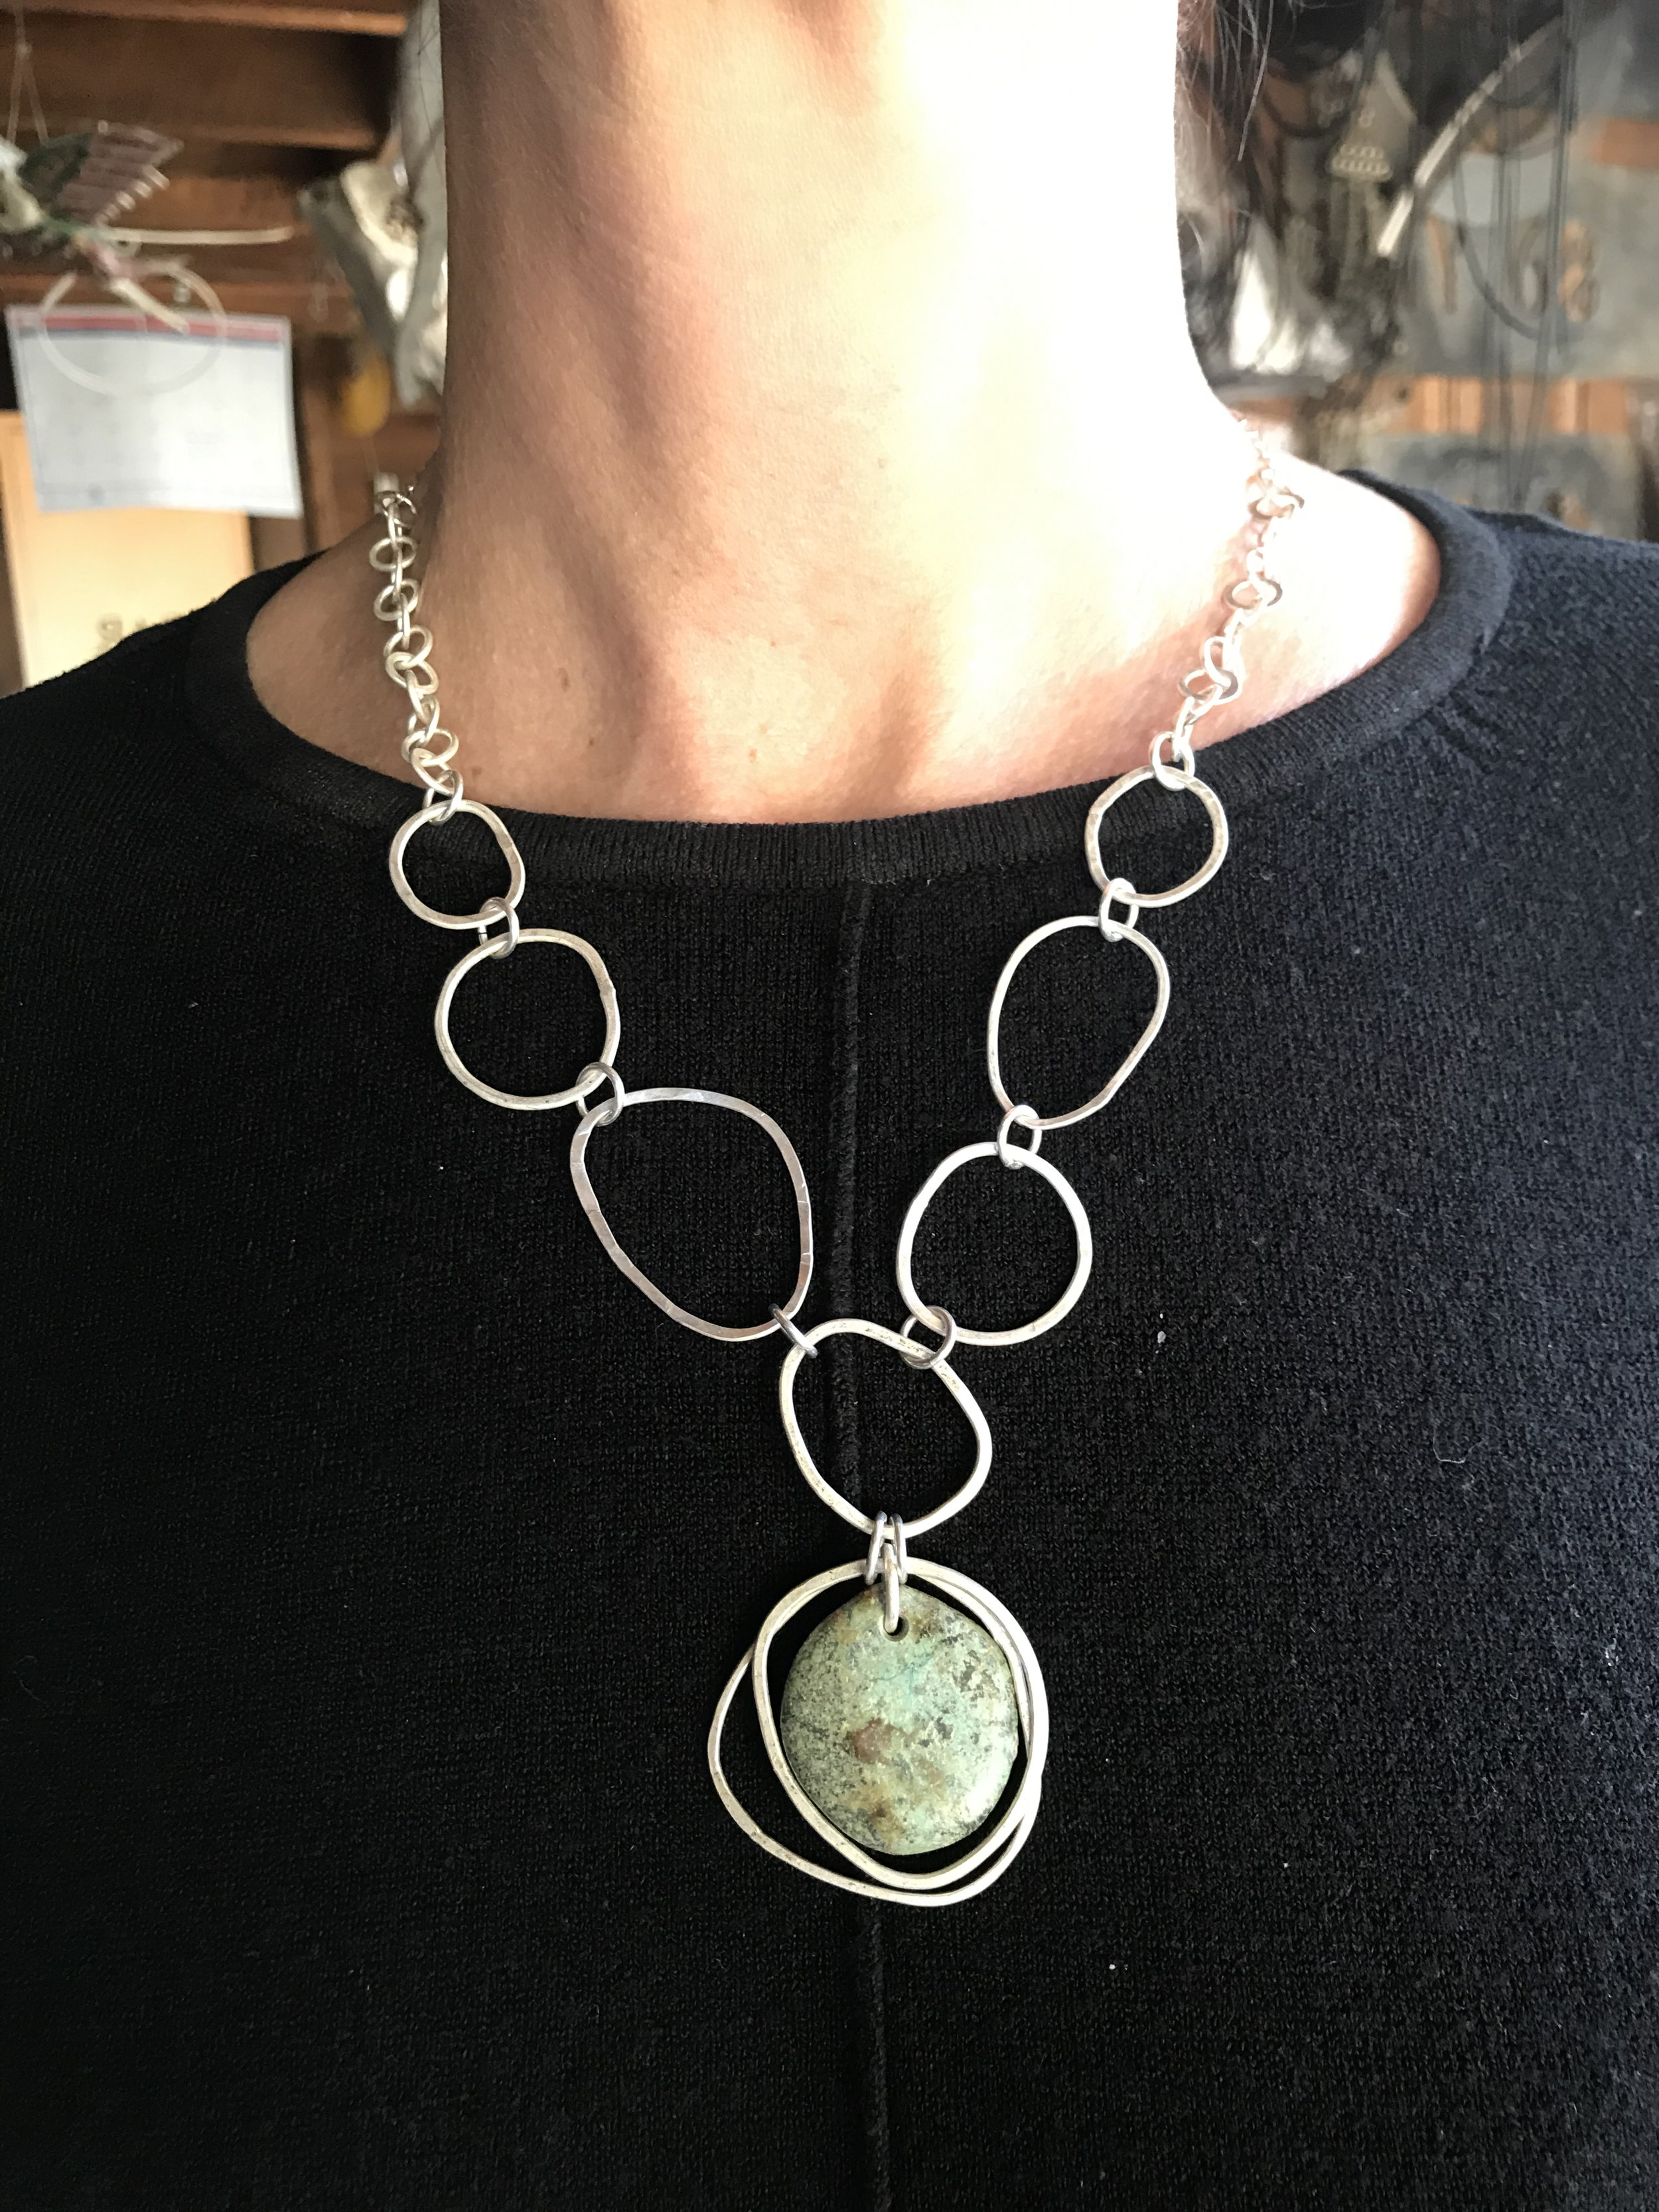 Hammered Pendants Workshop Saturday May 18th 2019 - Hi TracyI just wanted to send you a very big thank you for another wonderful day on Saturday! You are the most patient person and always so encouraging. I love your work and spending time with you in your studio is a real treat! I love our pendant we made! She's beautiful!Lots of love,Tina